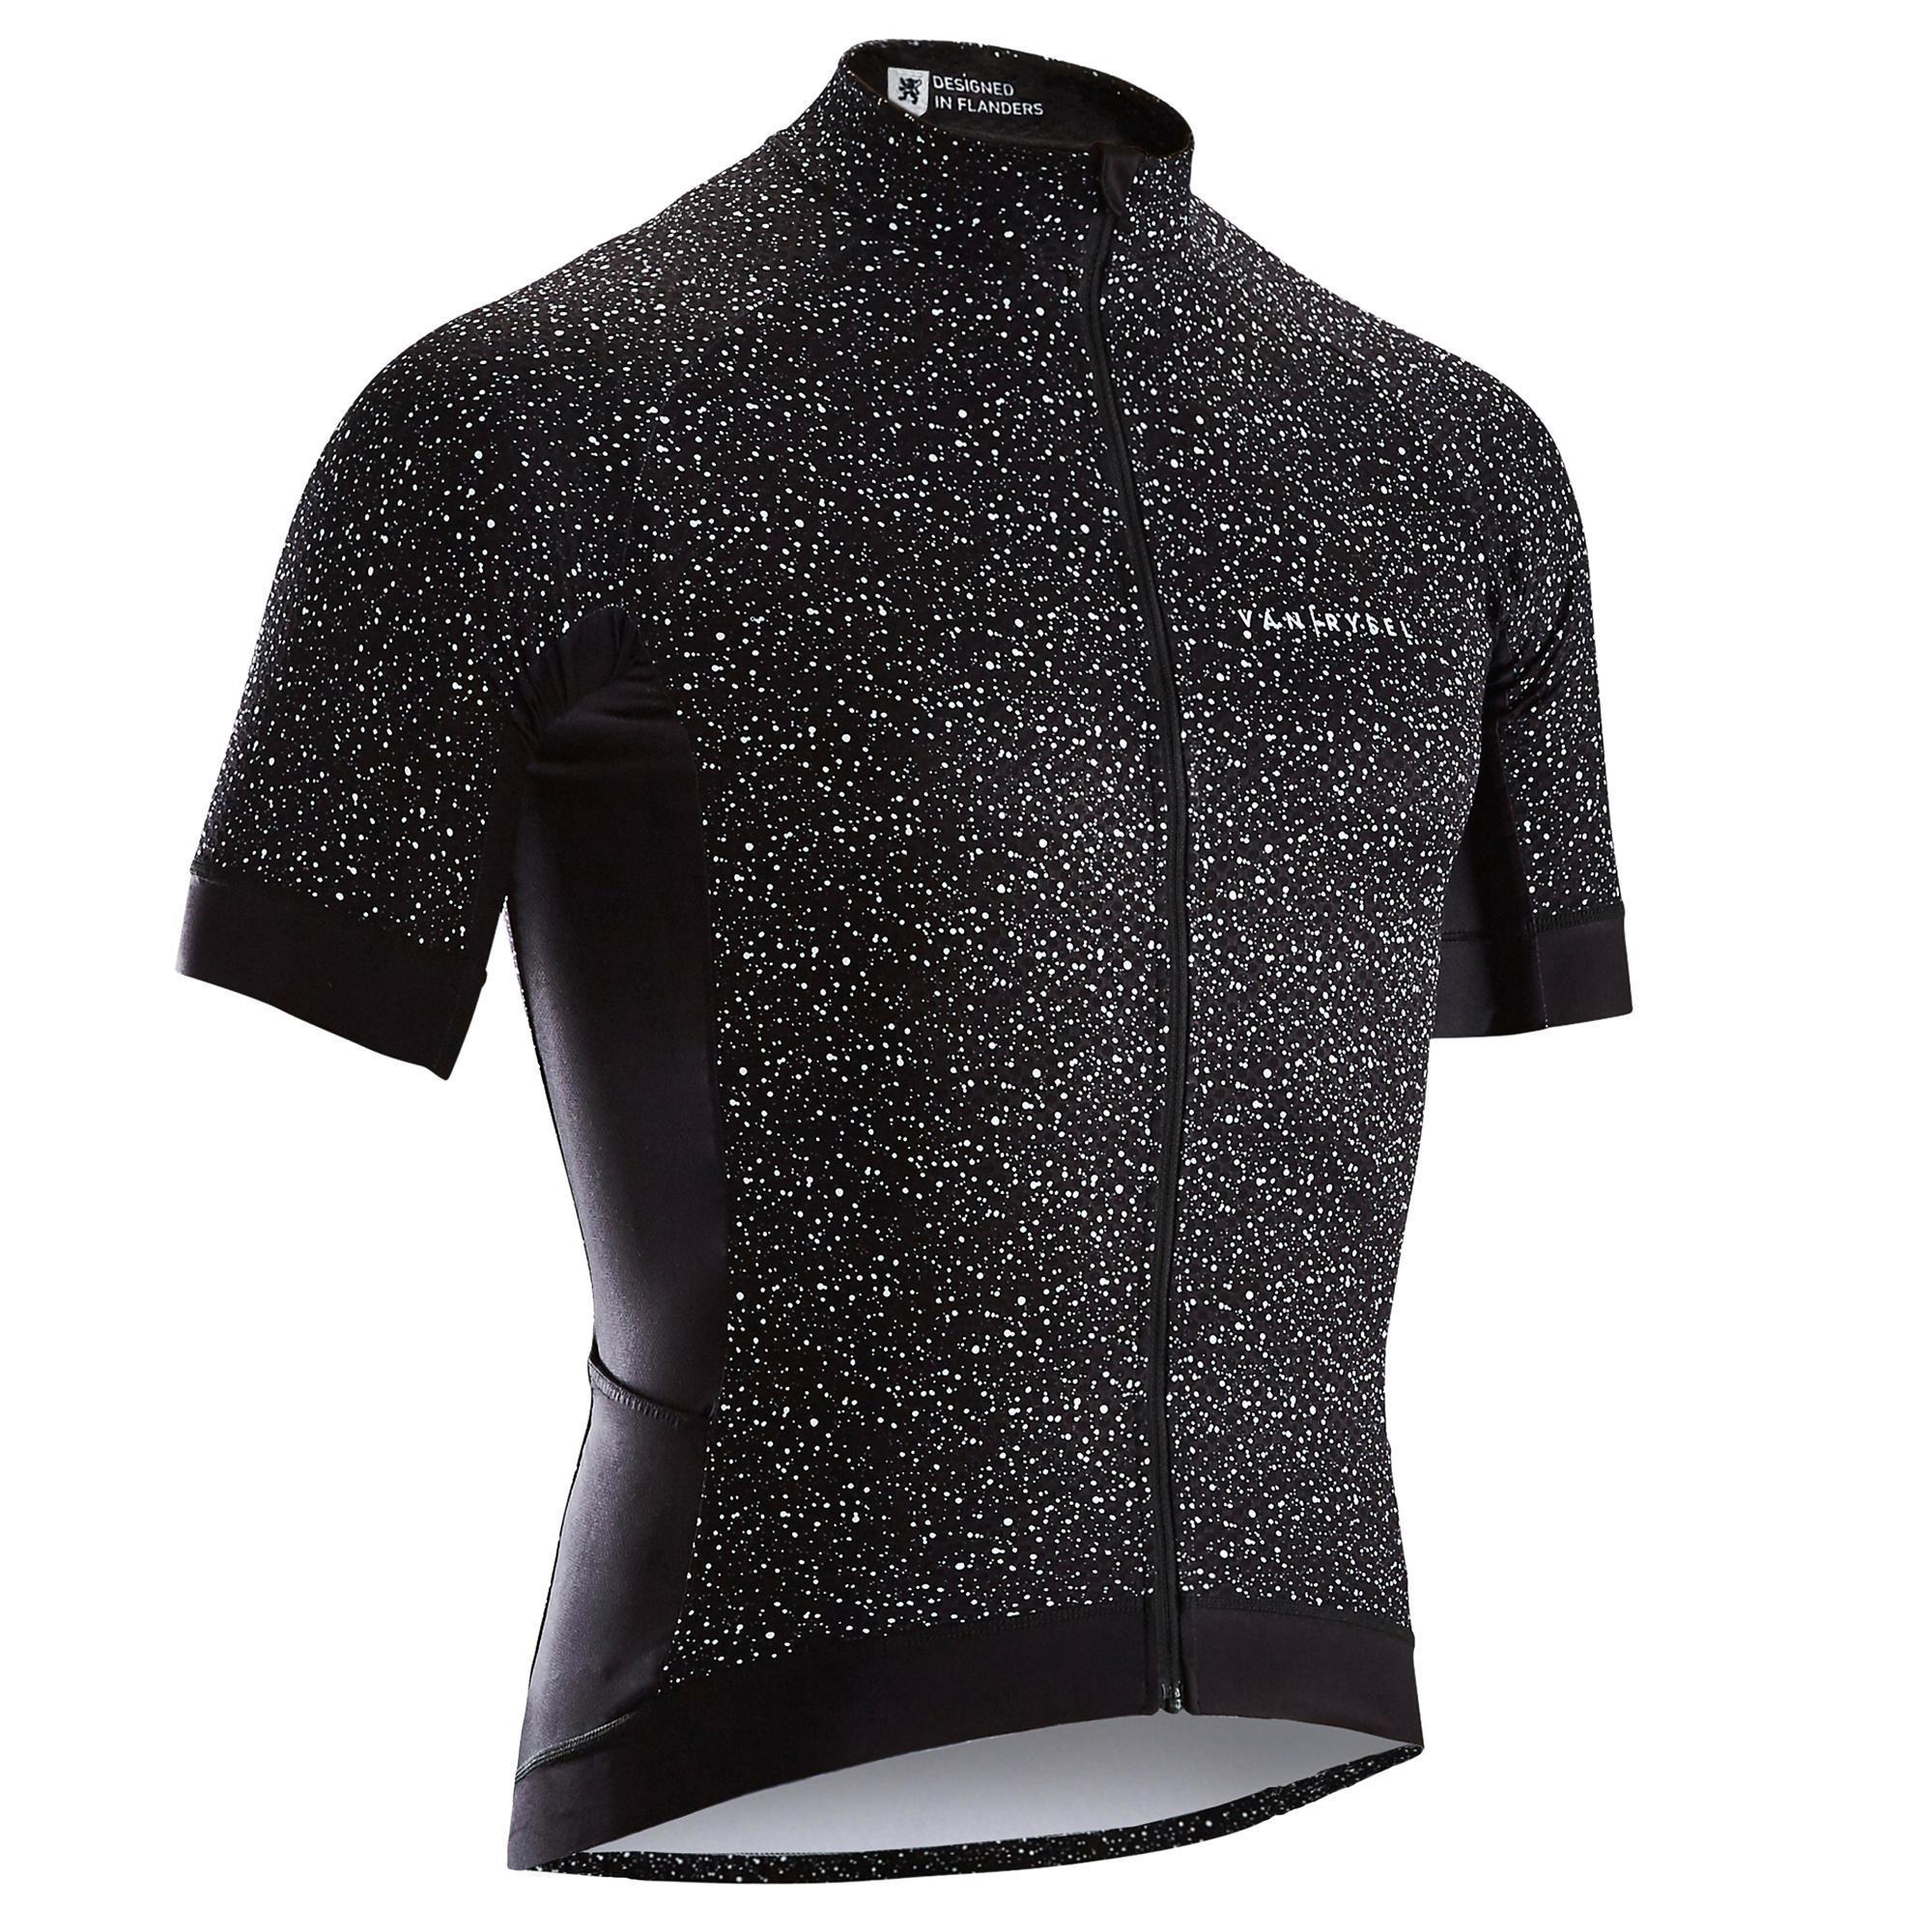 Maillot velo route ete homme cyclosport noir dripping van rysel